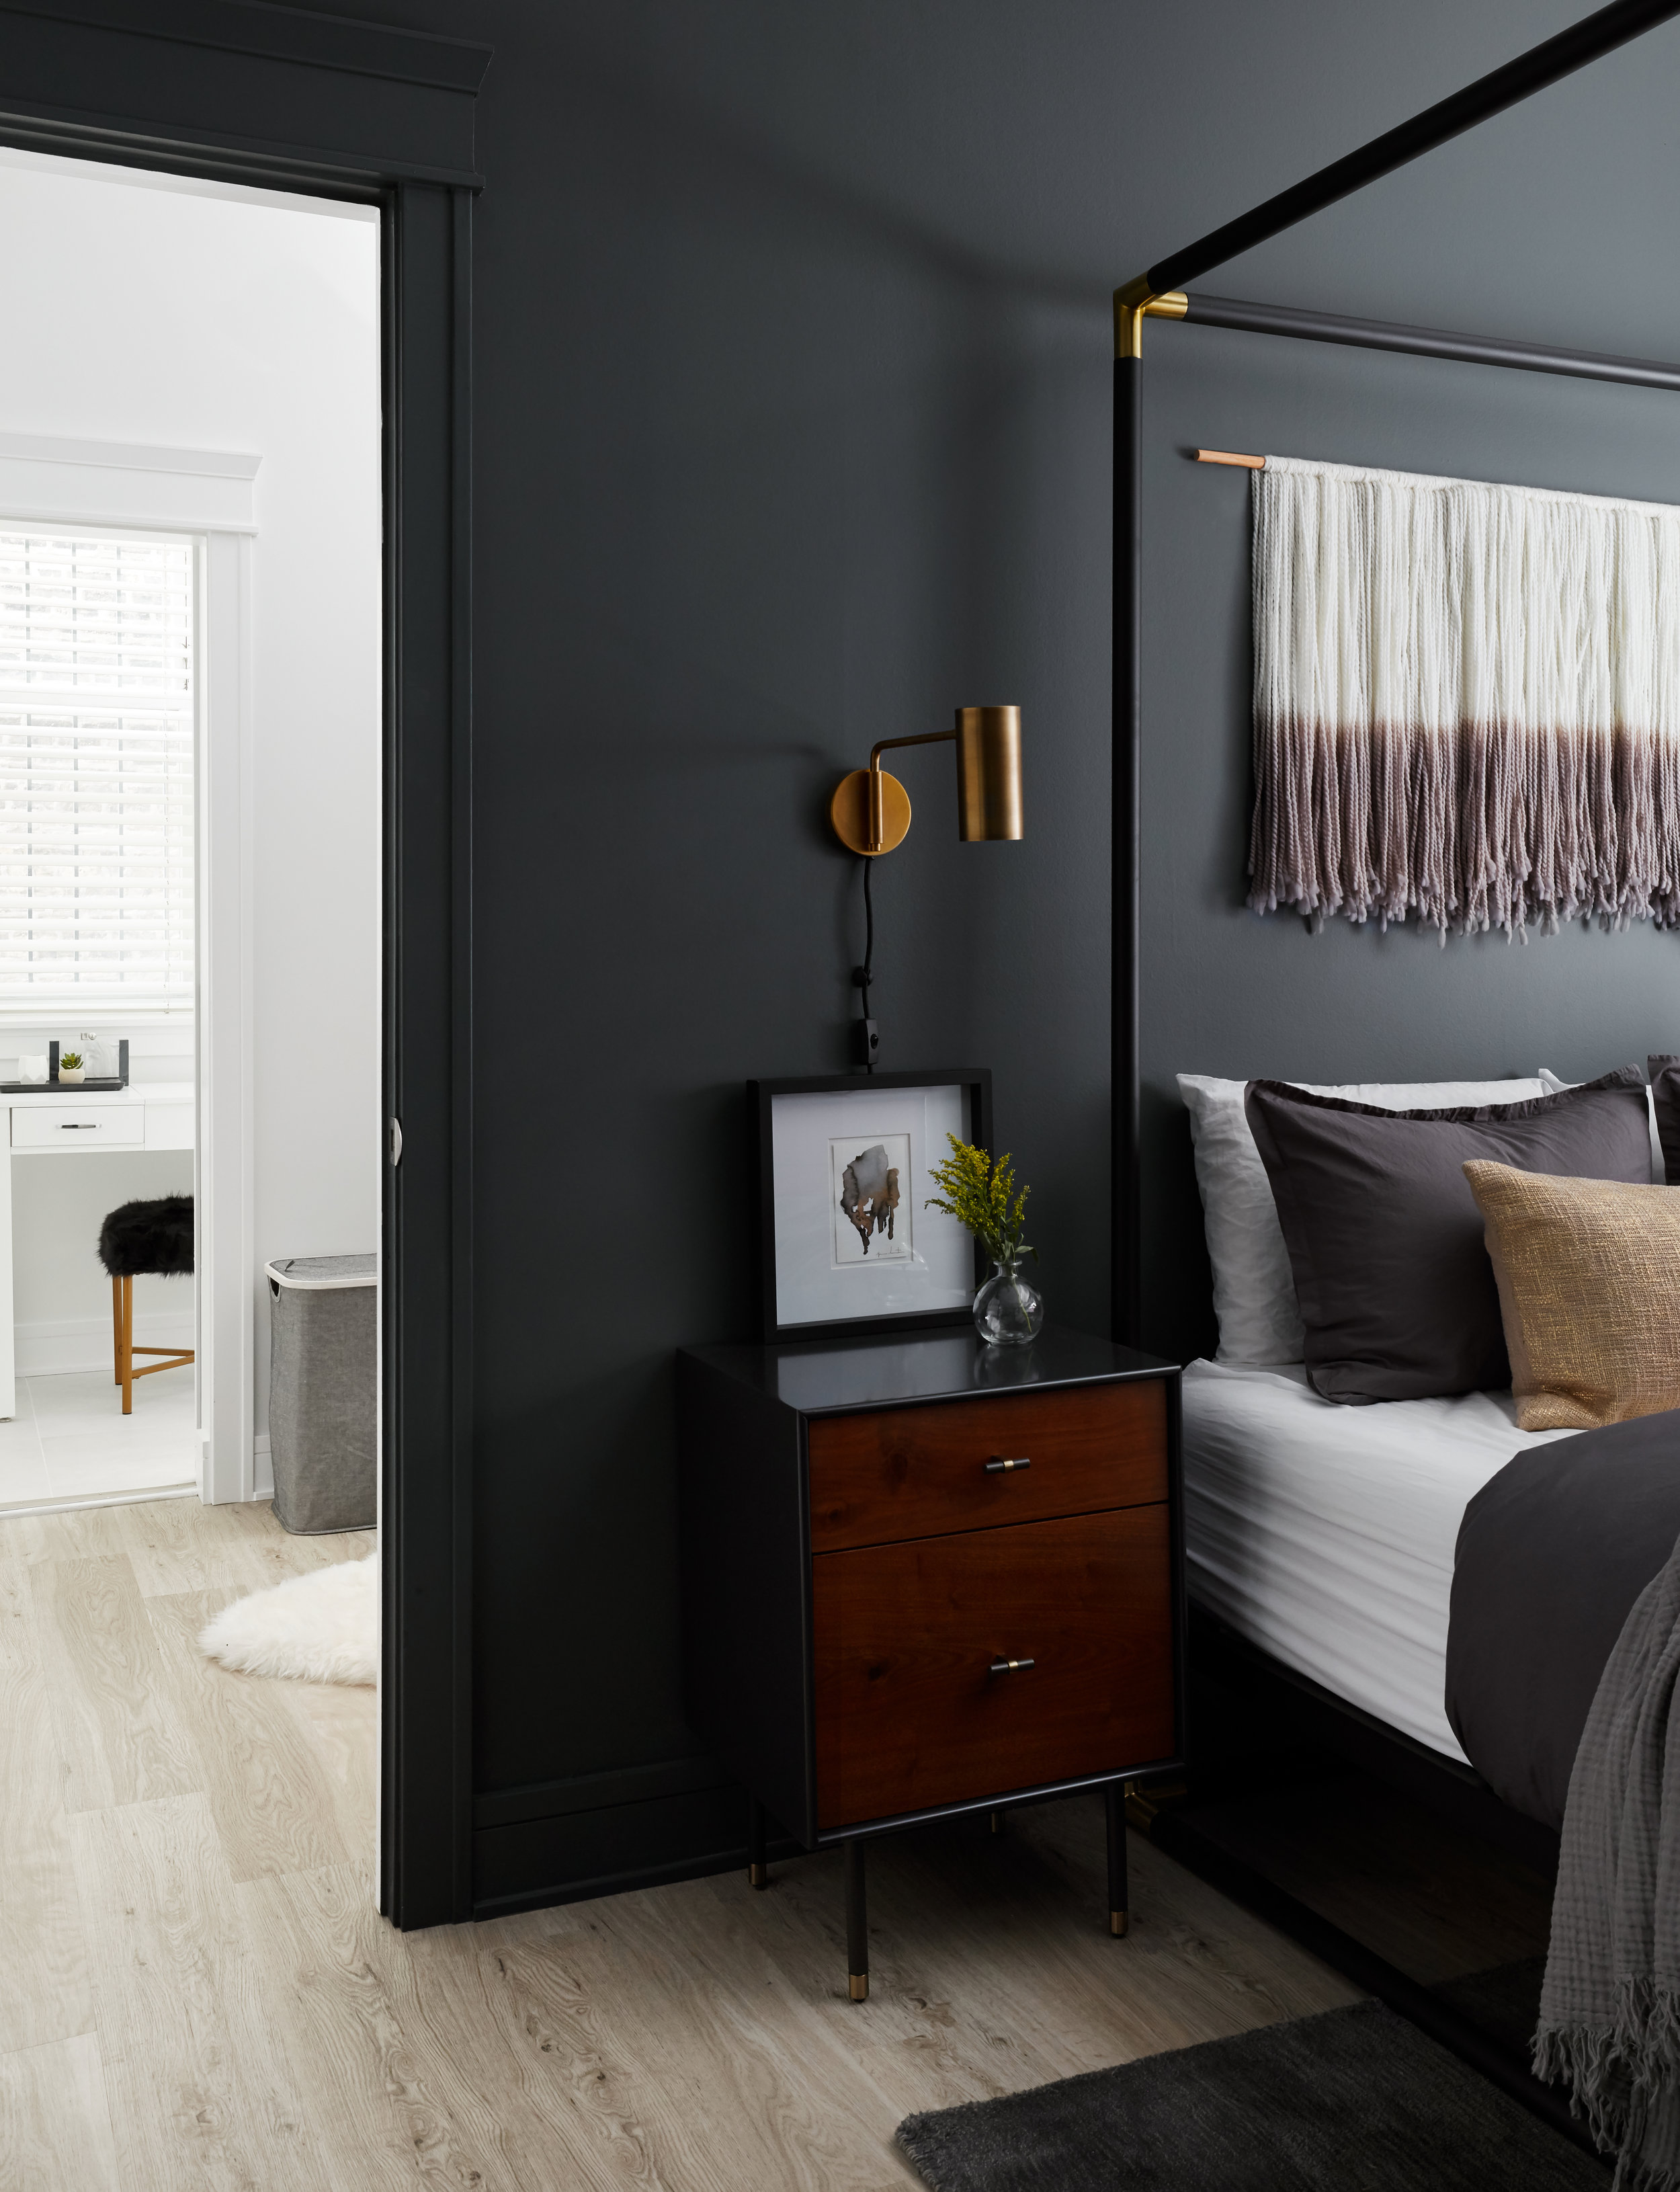 We carried the new, lighter floors into the master suite to contrast the moody, dark bedroom. The bedroom opens up to the new walk-in closet and en-suite master bathroom.